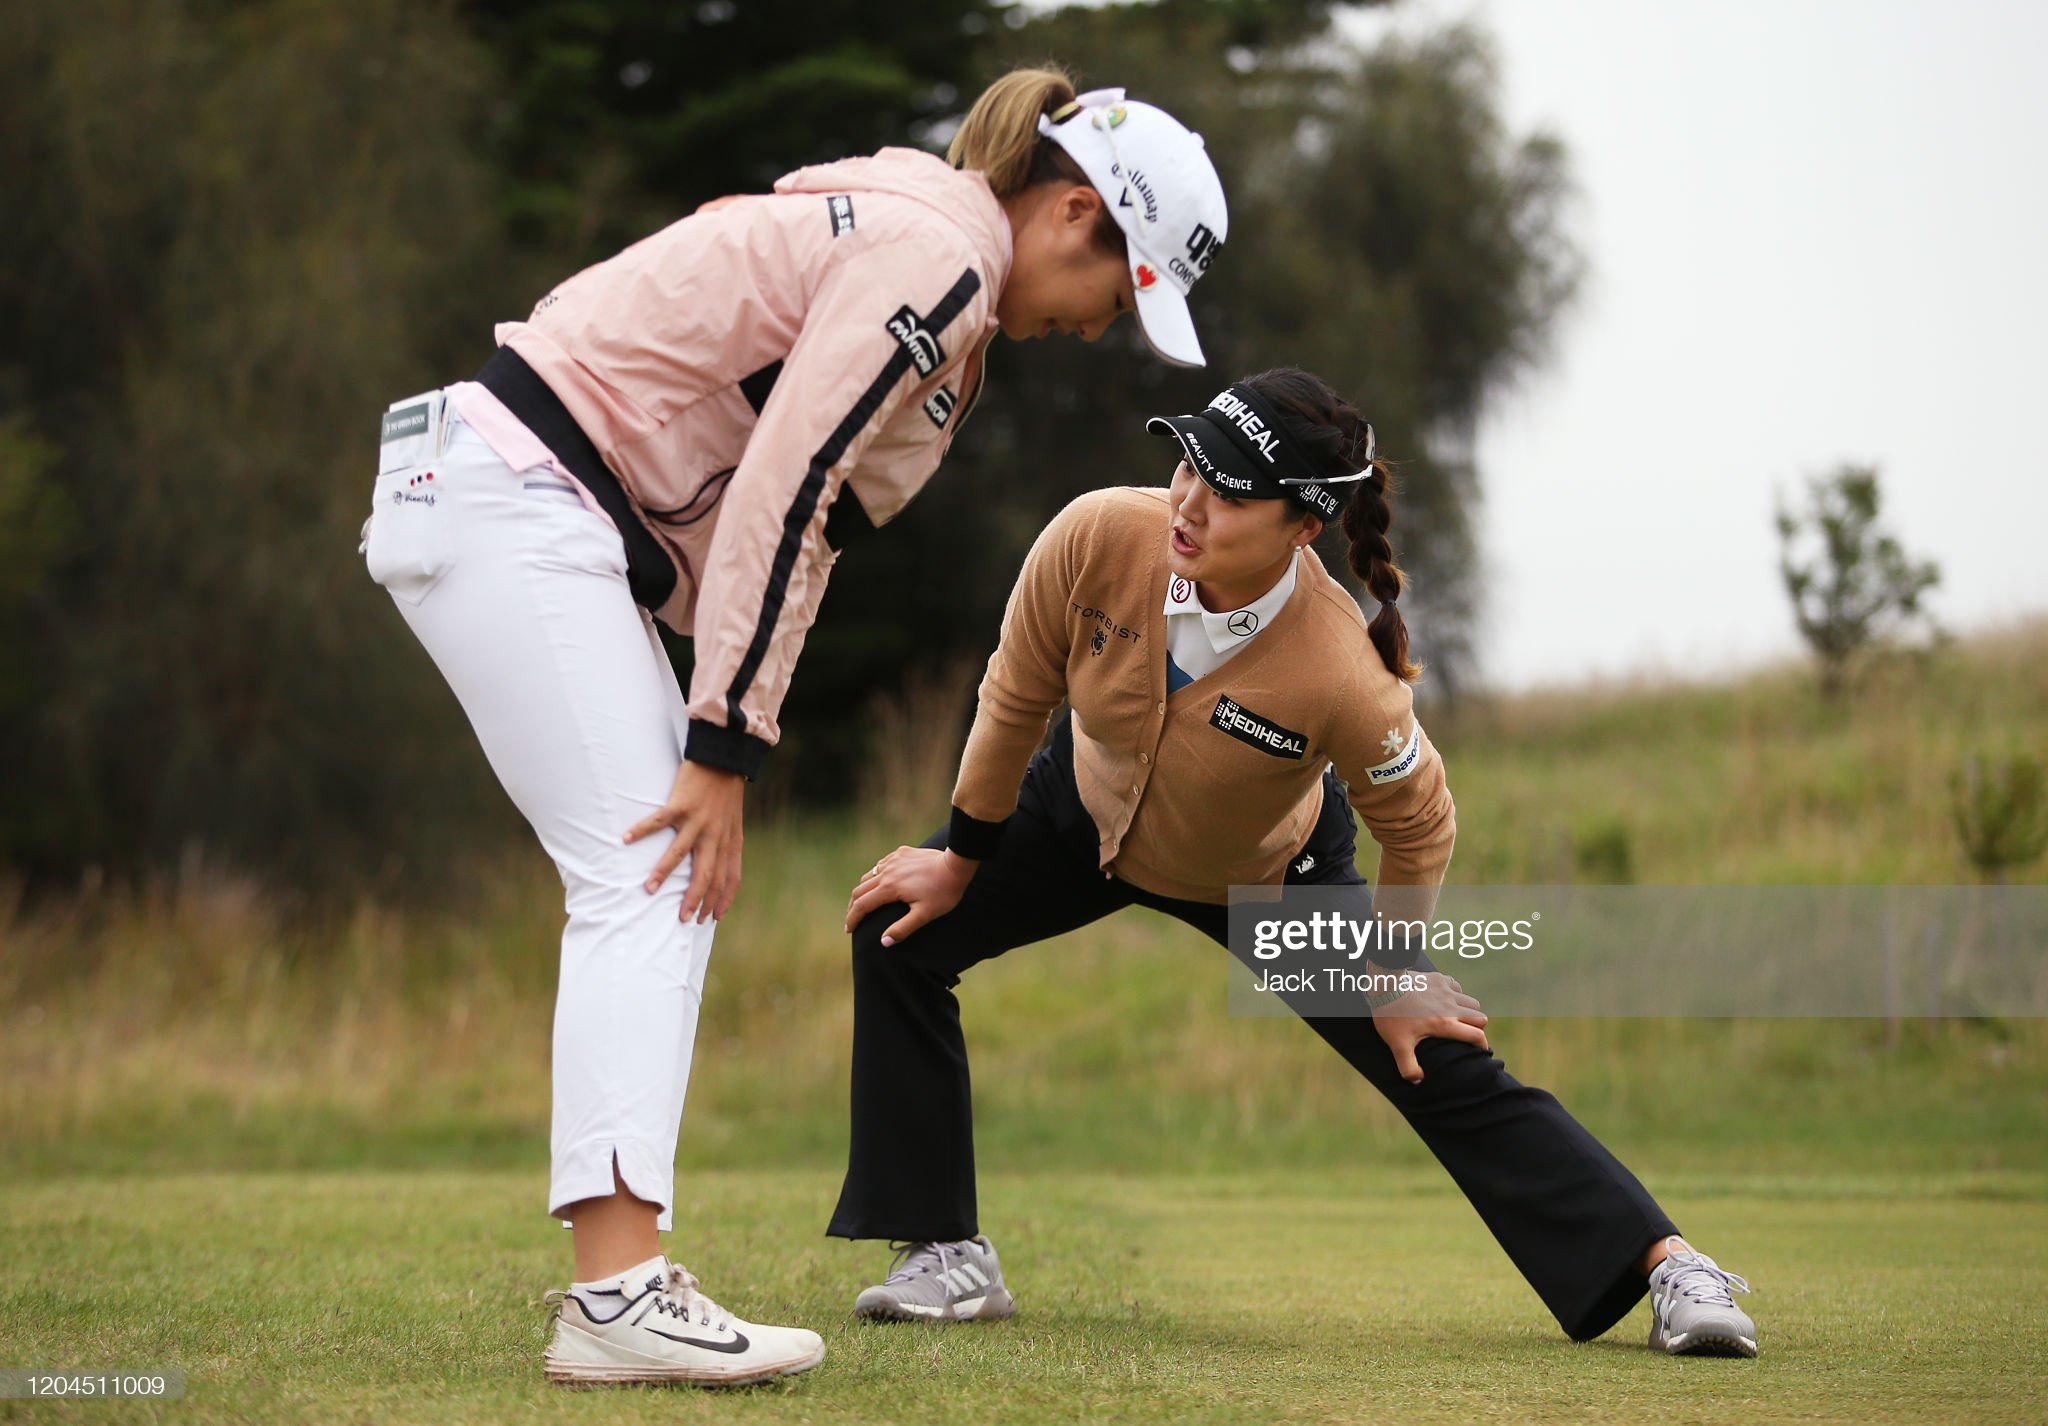 https://media.gettyimages.com/photos/ryu-soyeon-of-south-korea-and-jeongeun-lee6-of-south-korea-stretch-on-picture-id1204511009?s=2048x2048